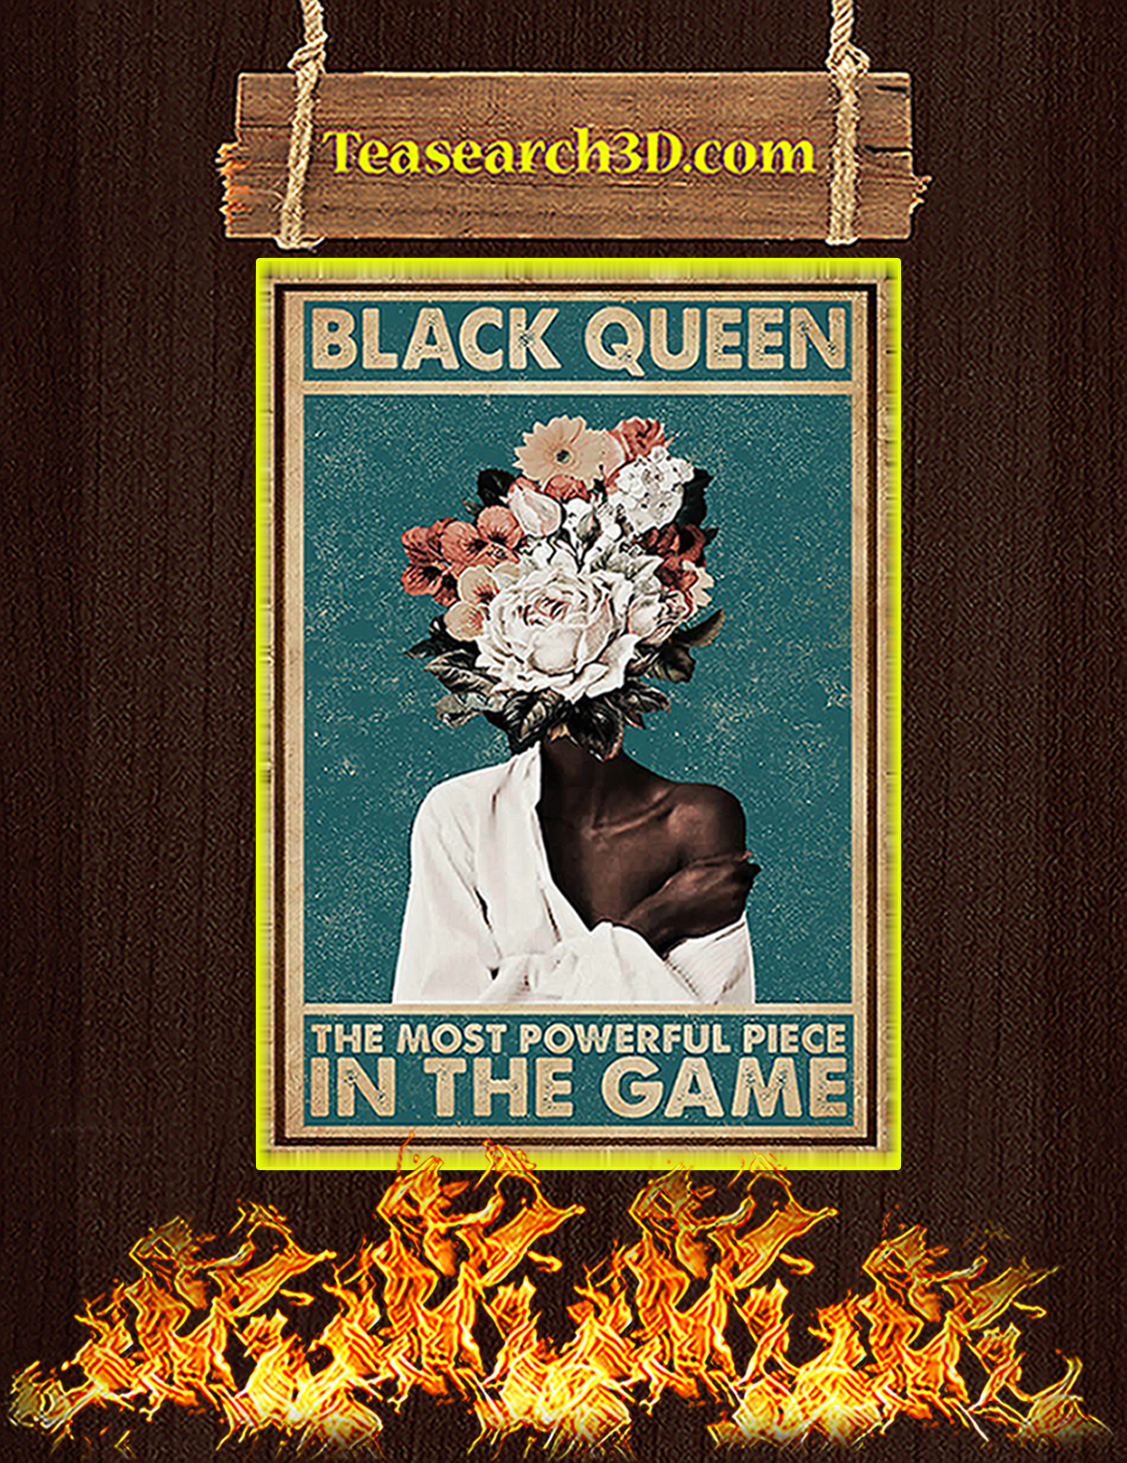 Flower black queen the most powerful piece in the game poster A3